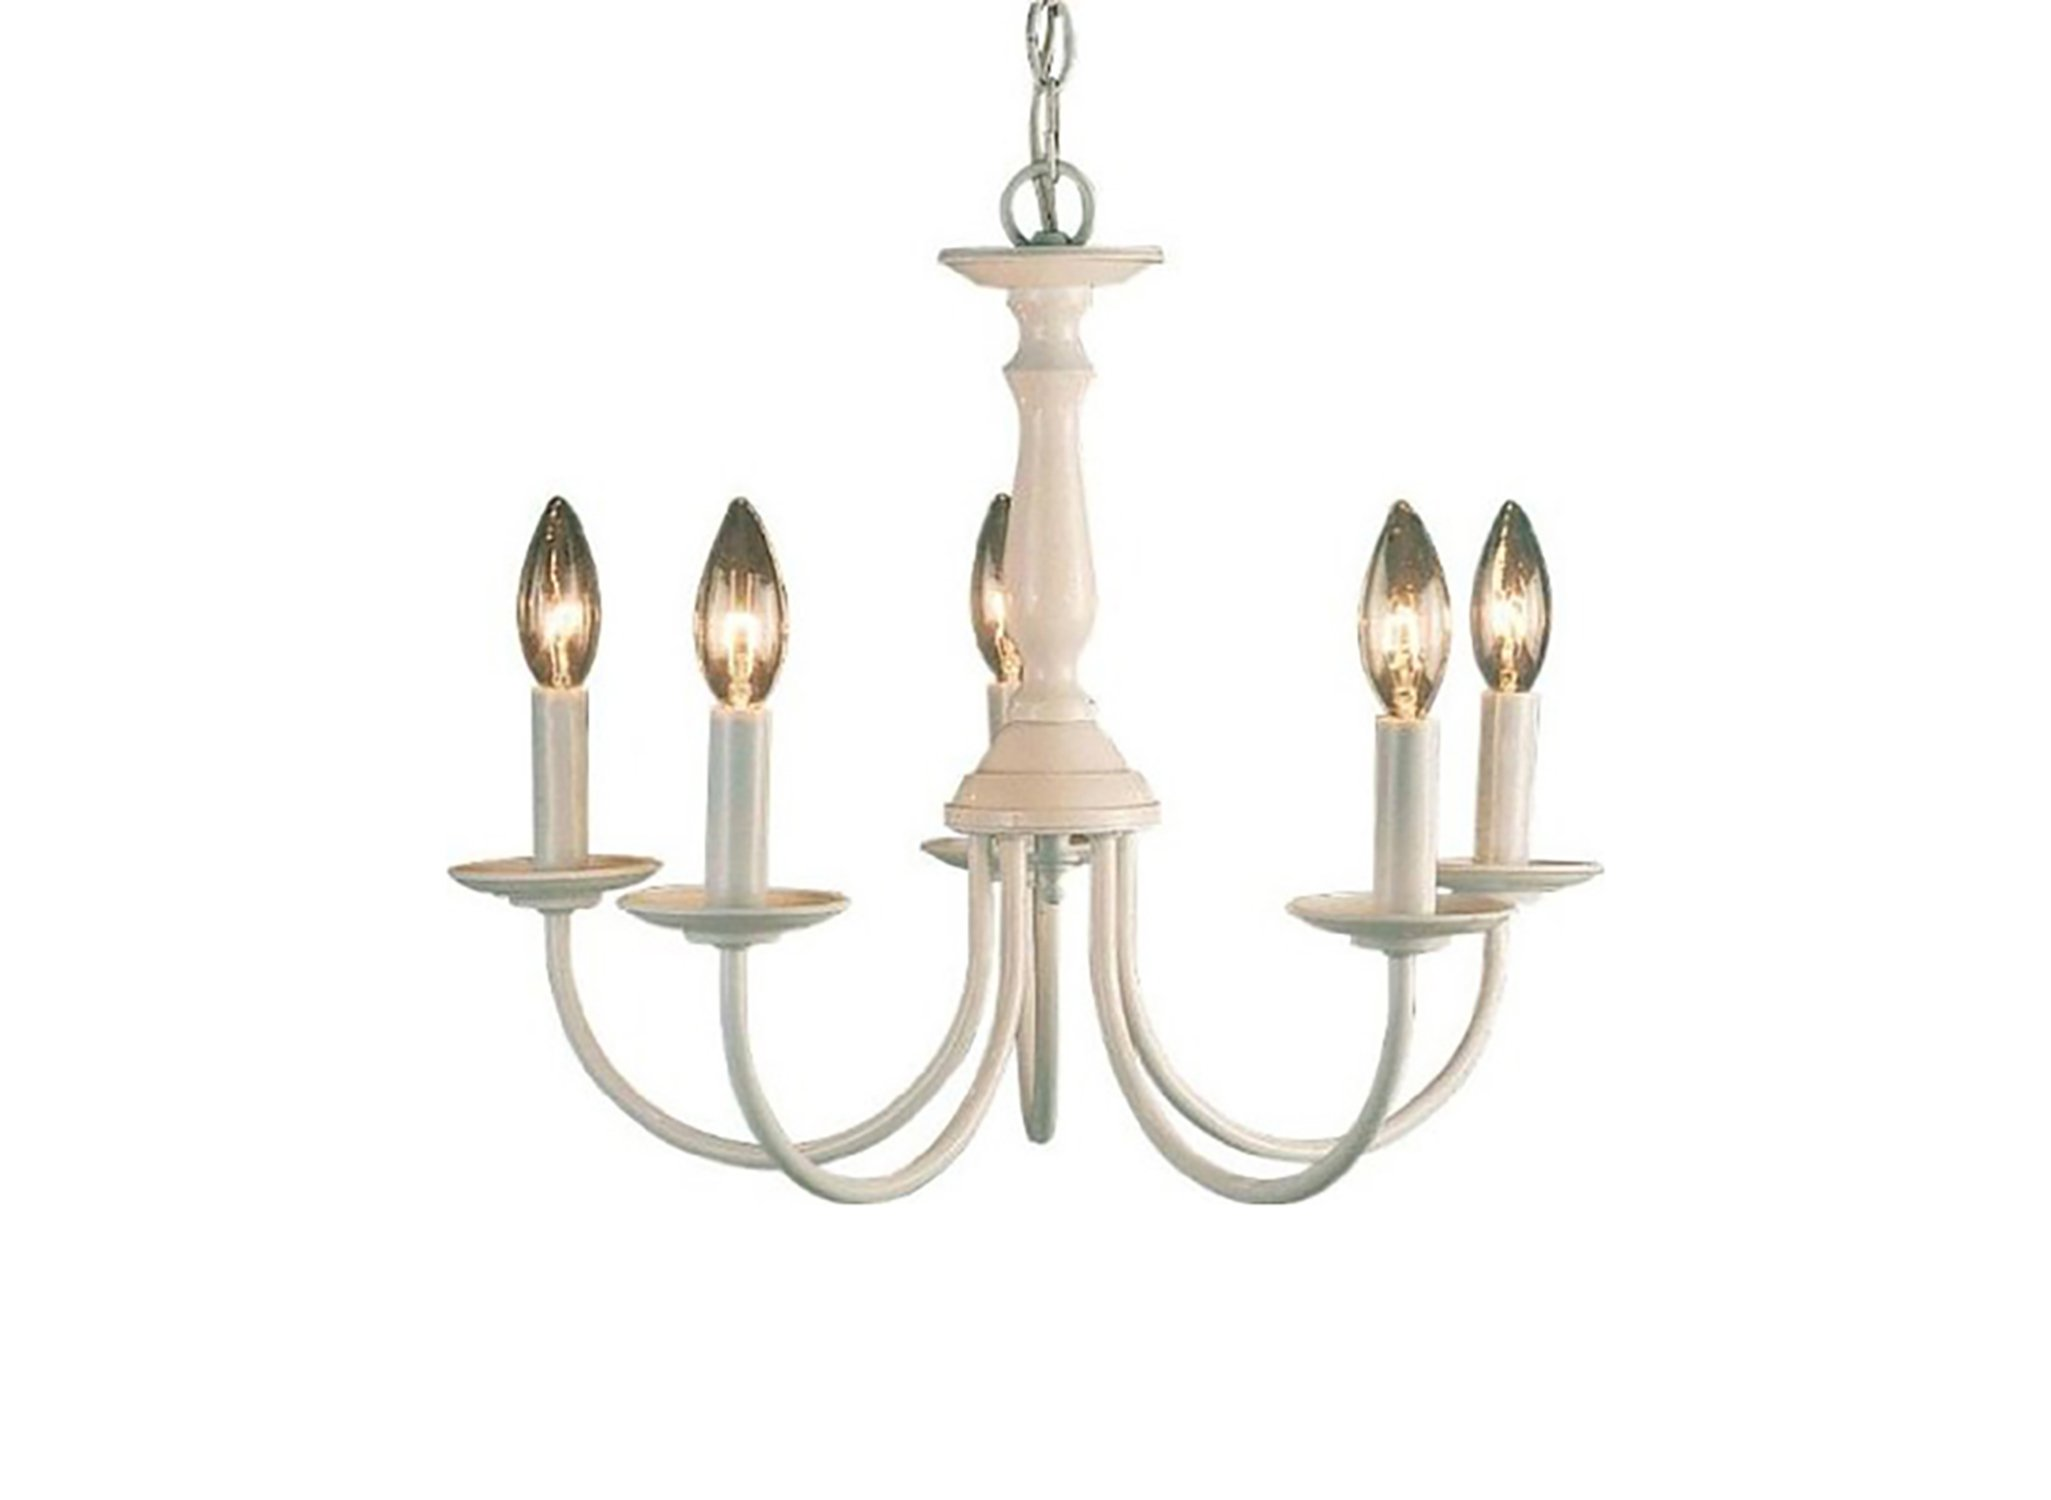 Volume Lighting V4515-6 5-Light White Chandelier, 18'' x 18'' x 15''